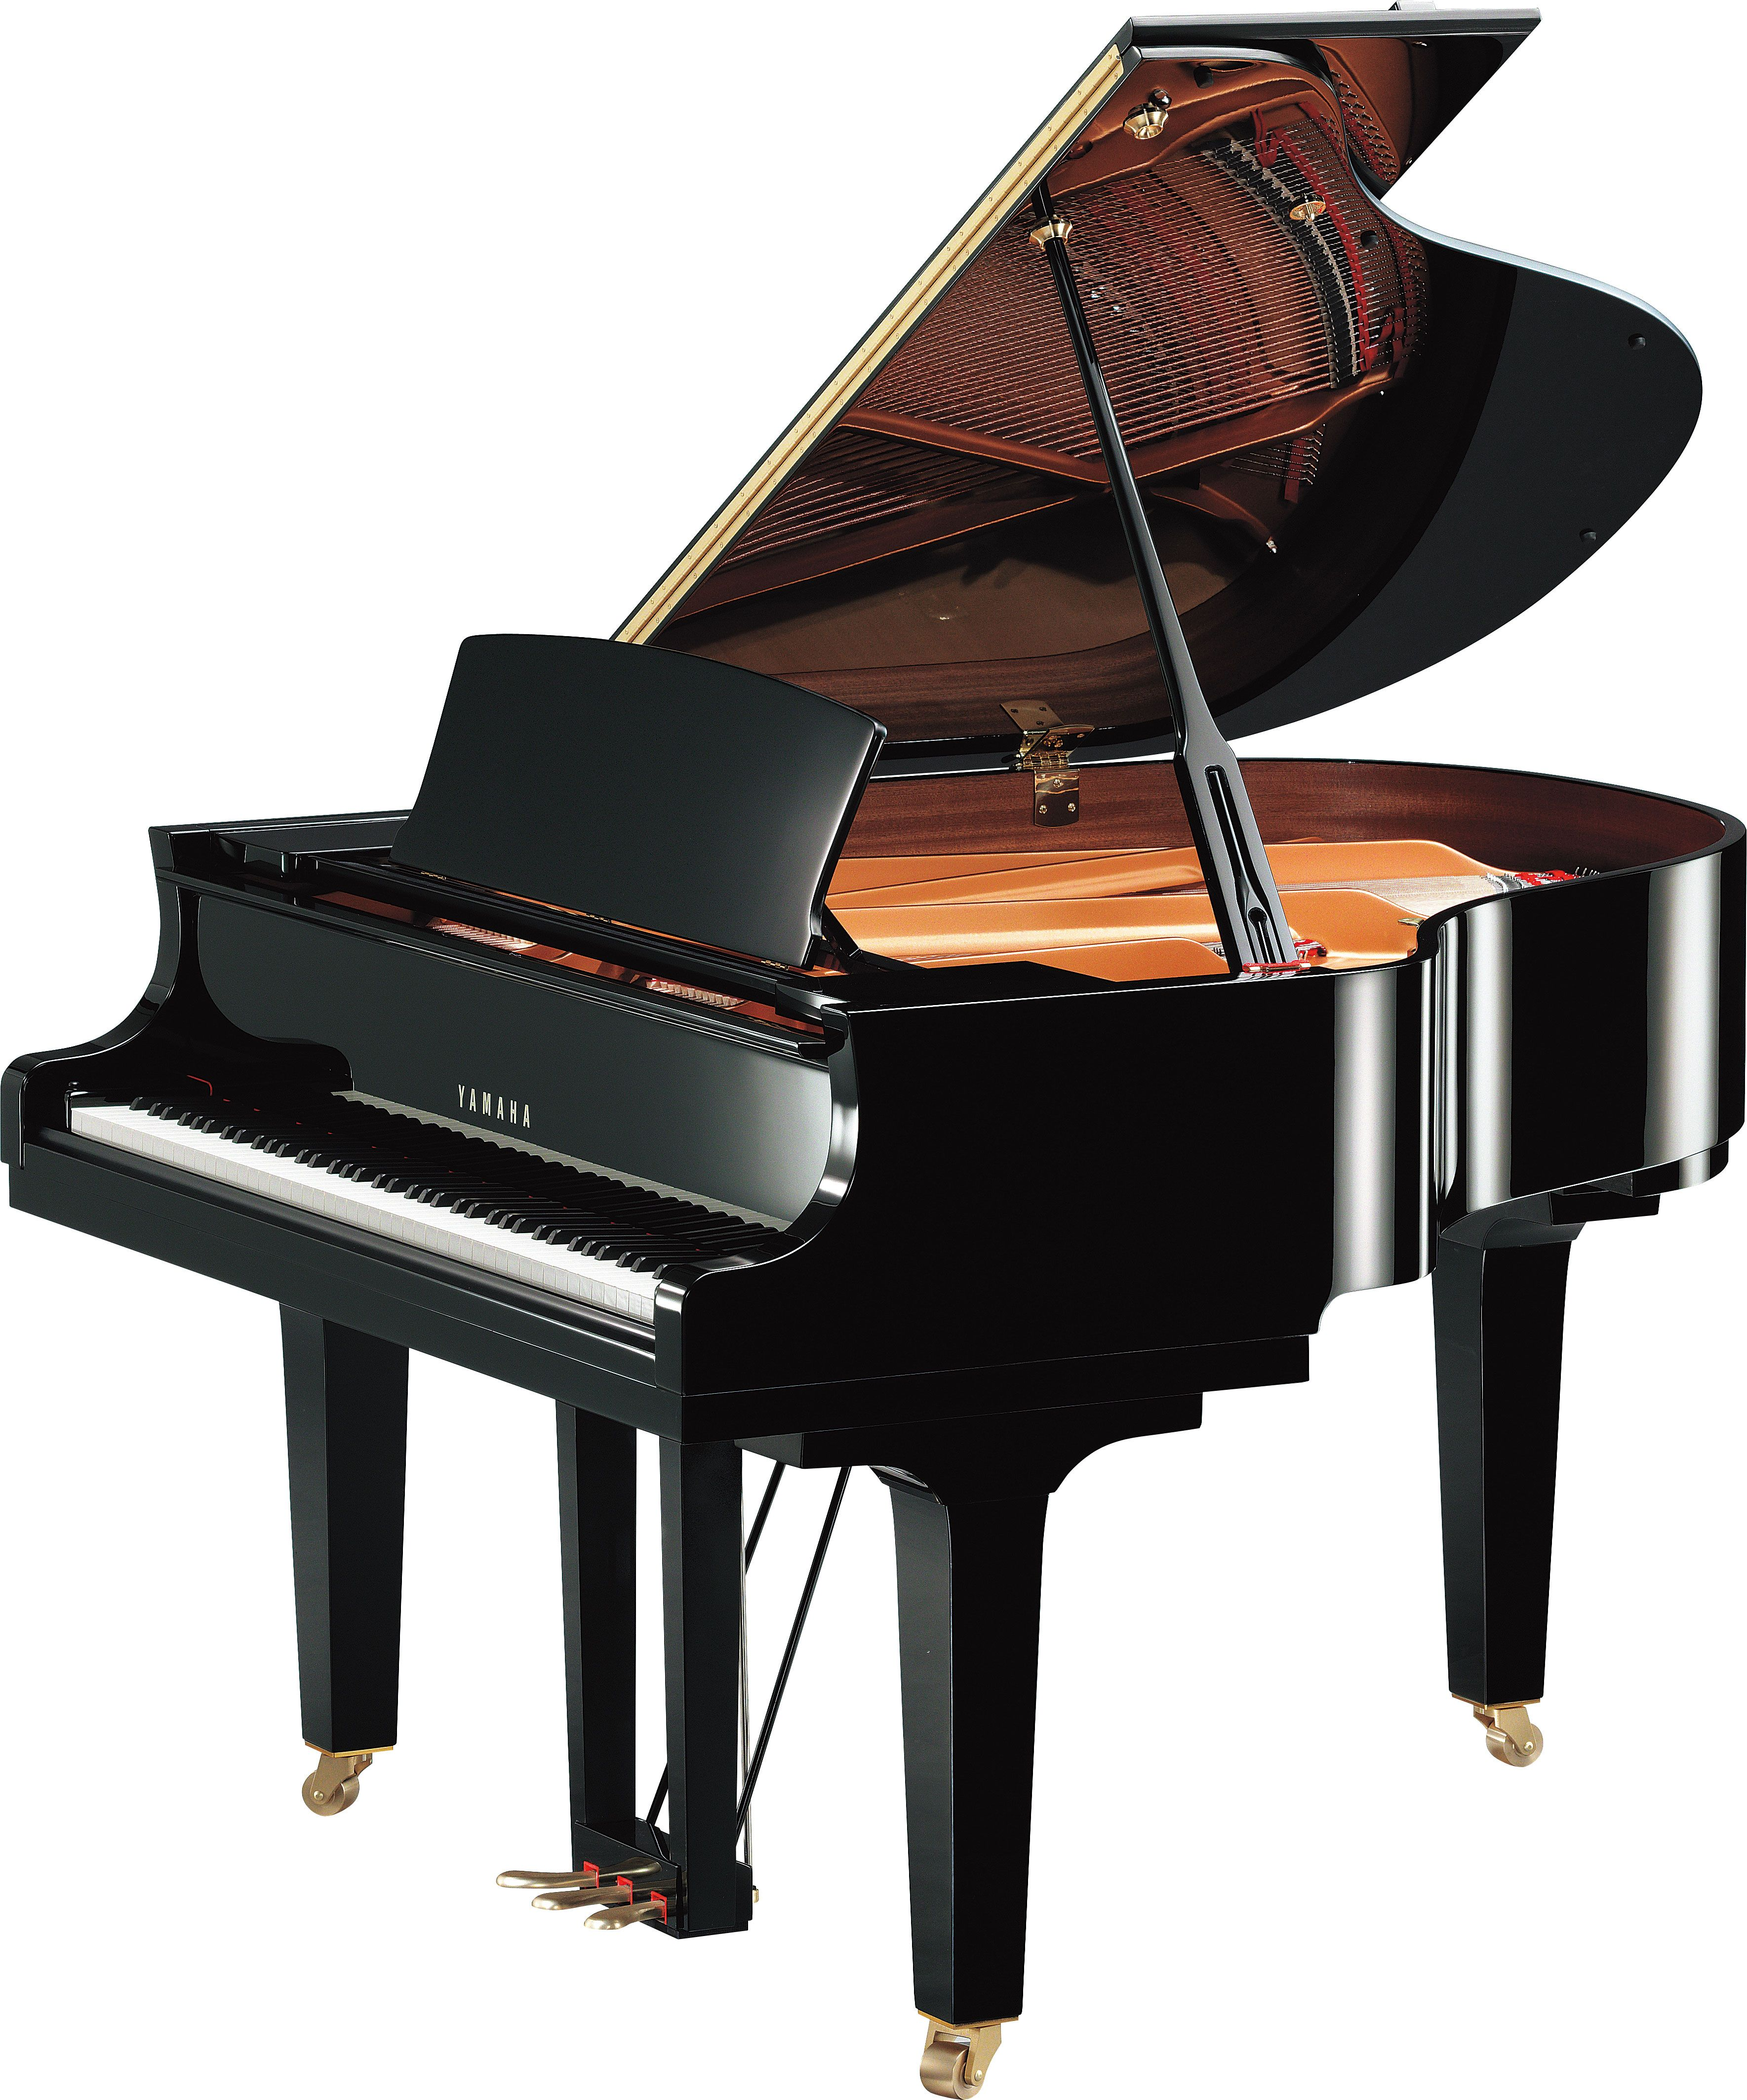 C1x Cx Series Grand Pianos Pianos Keyboards Musical Instruments Products Yamaha United States Musik Alat